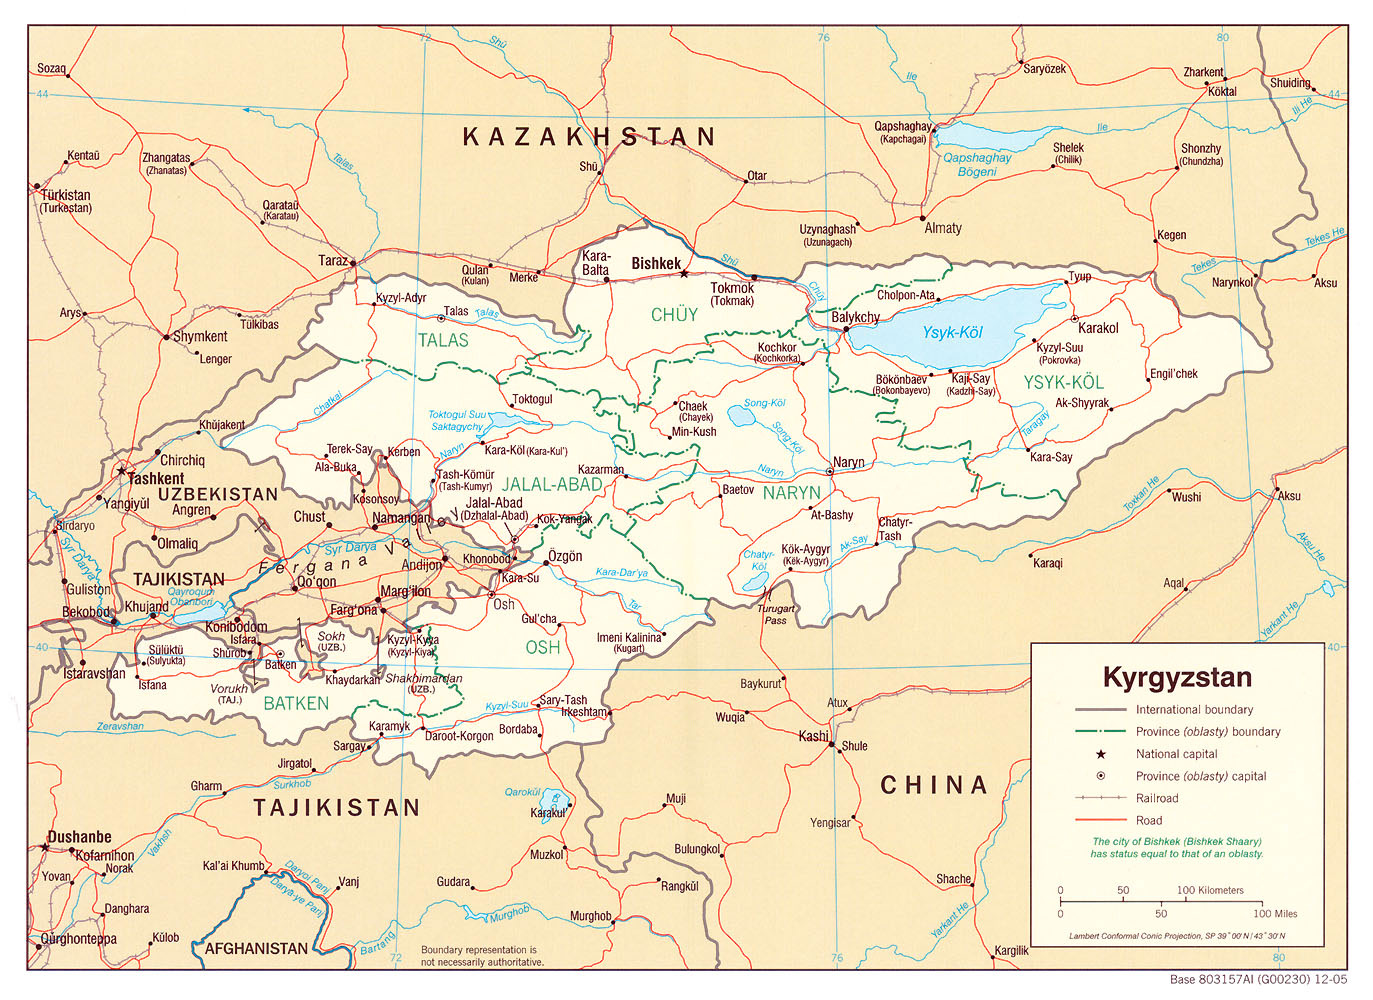 Detailed road and administrative map of Kyrgyzstan ...